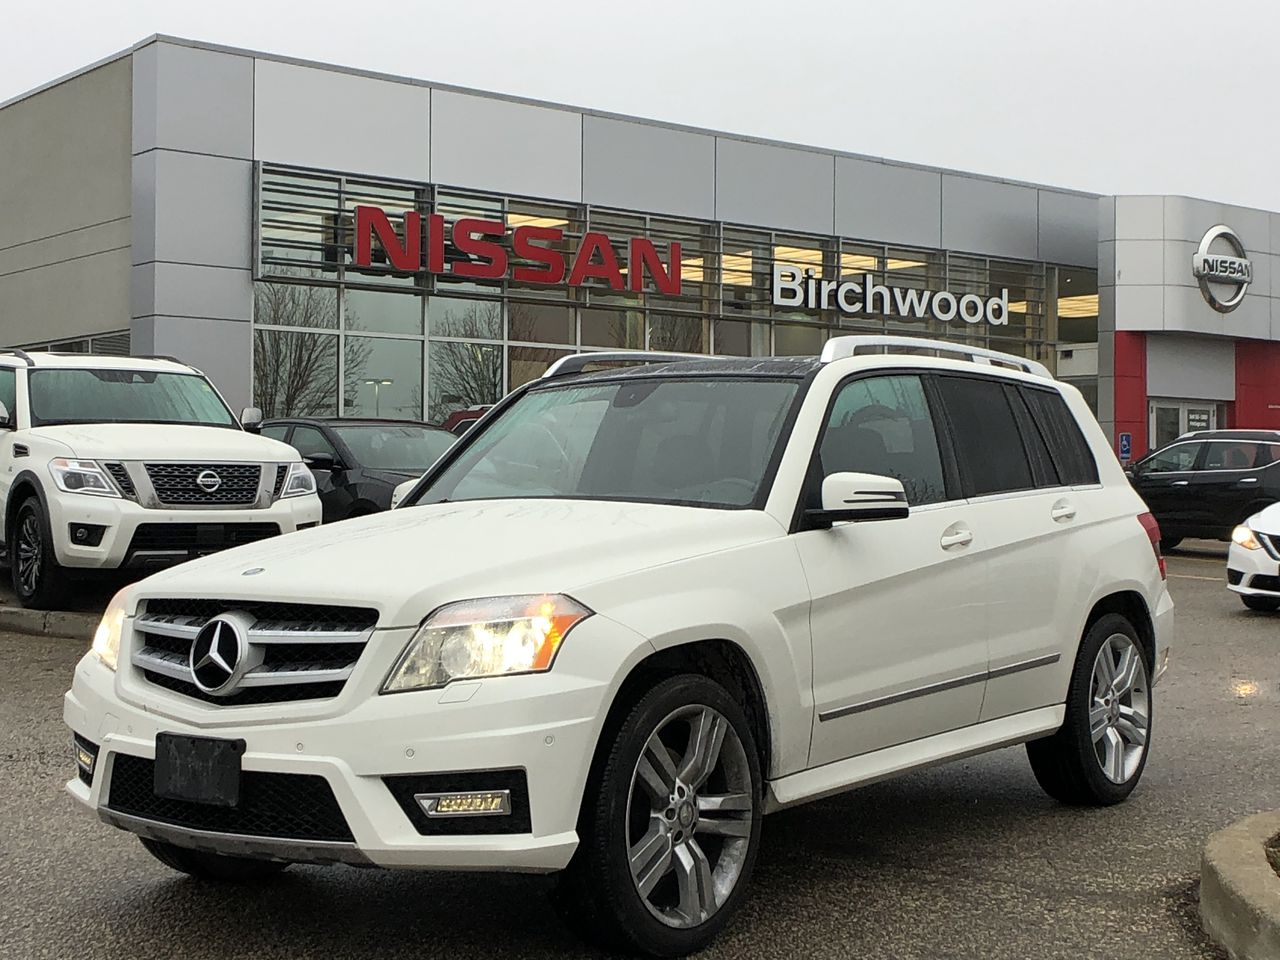 2012 Mercedes-Benz GLK-Class GLK350 Immaculate Condition Trade In! SUV